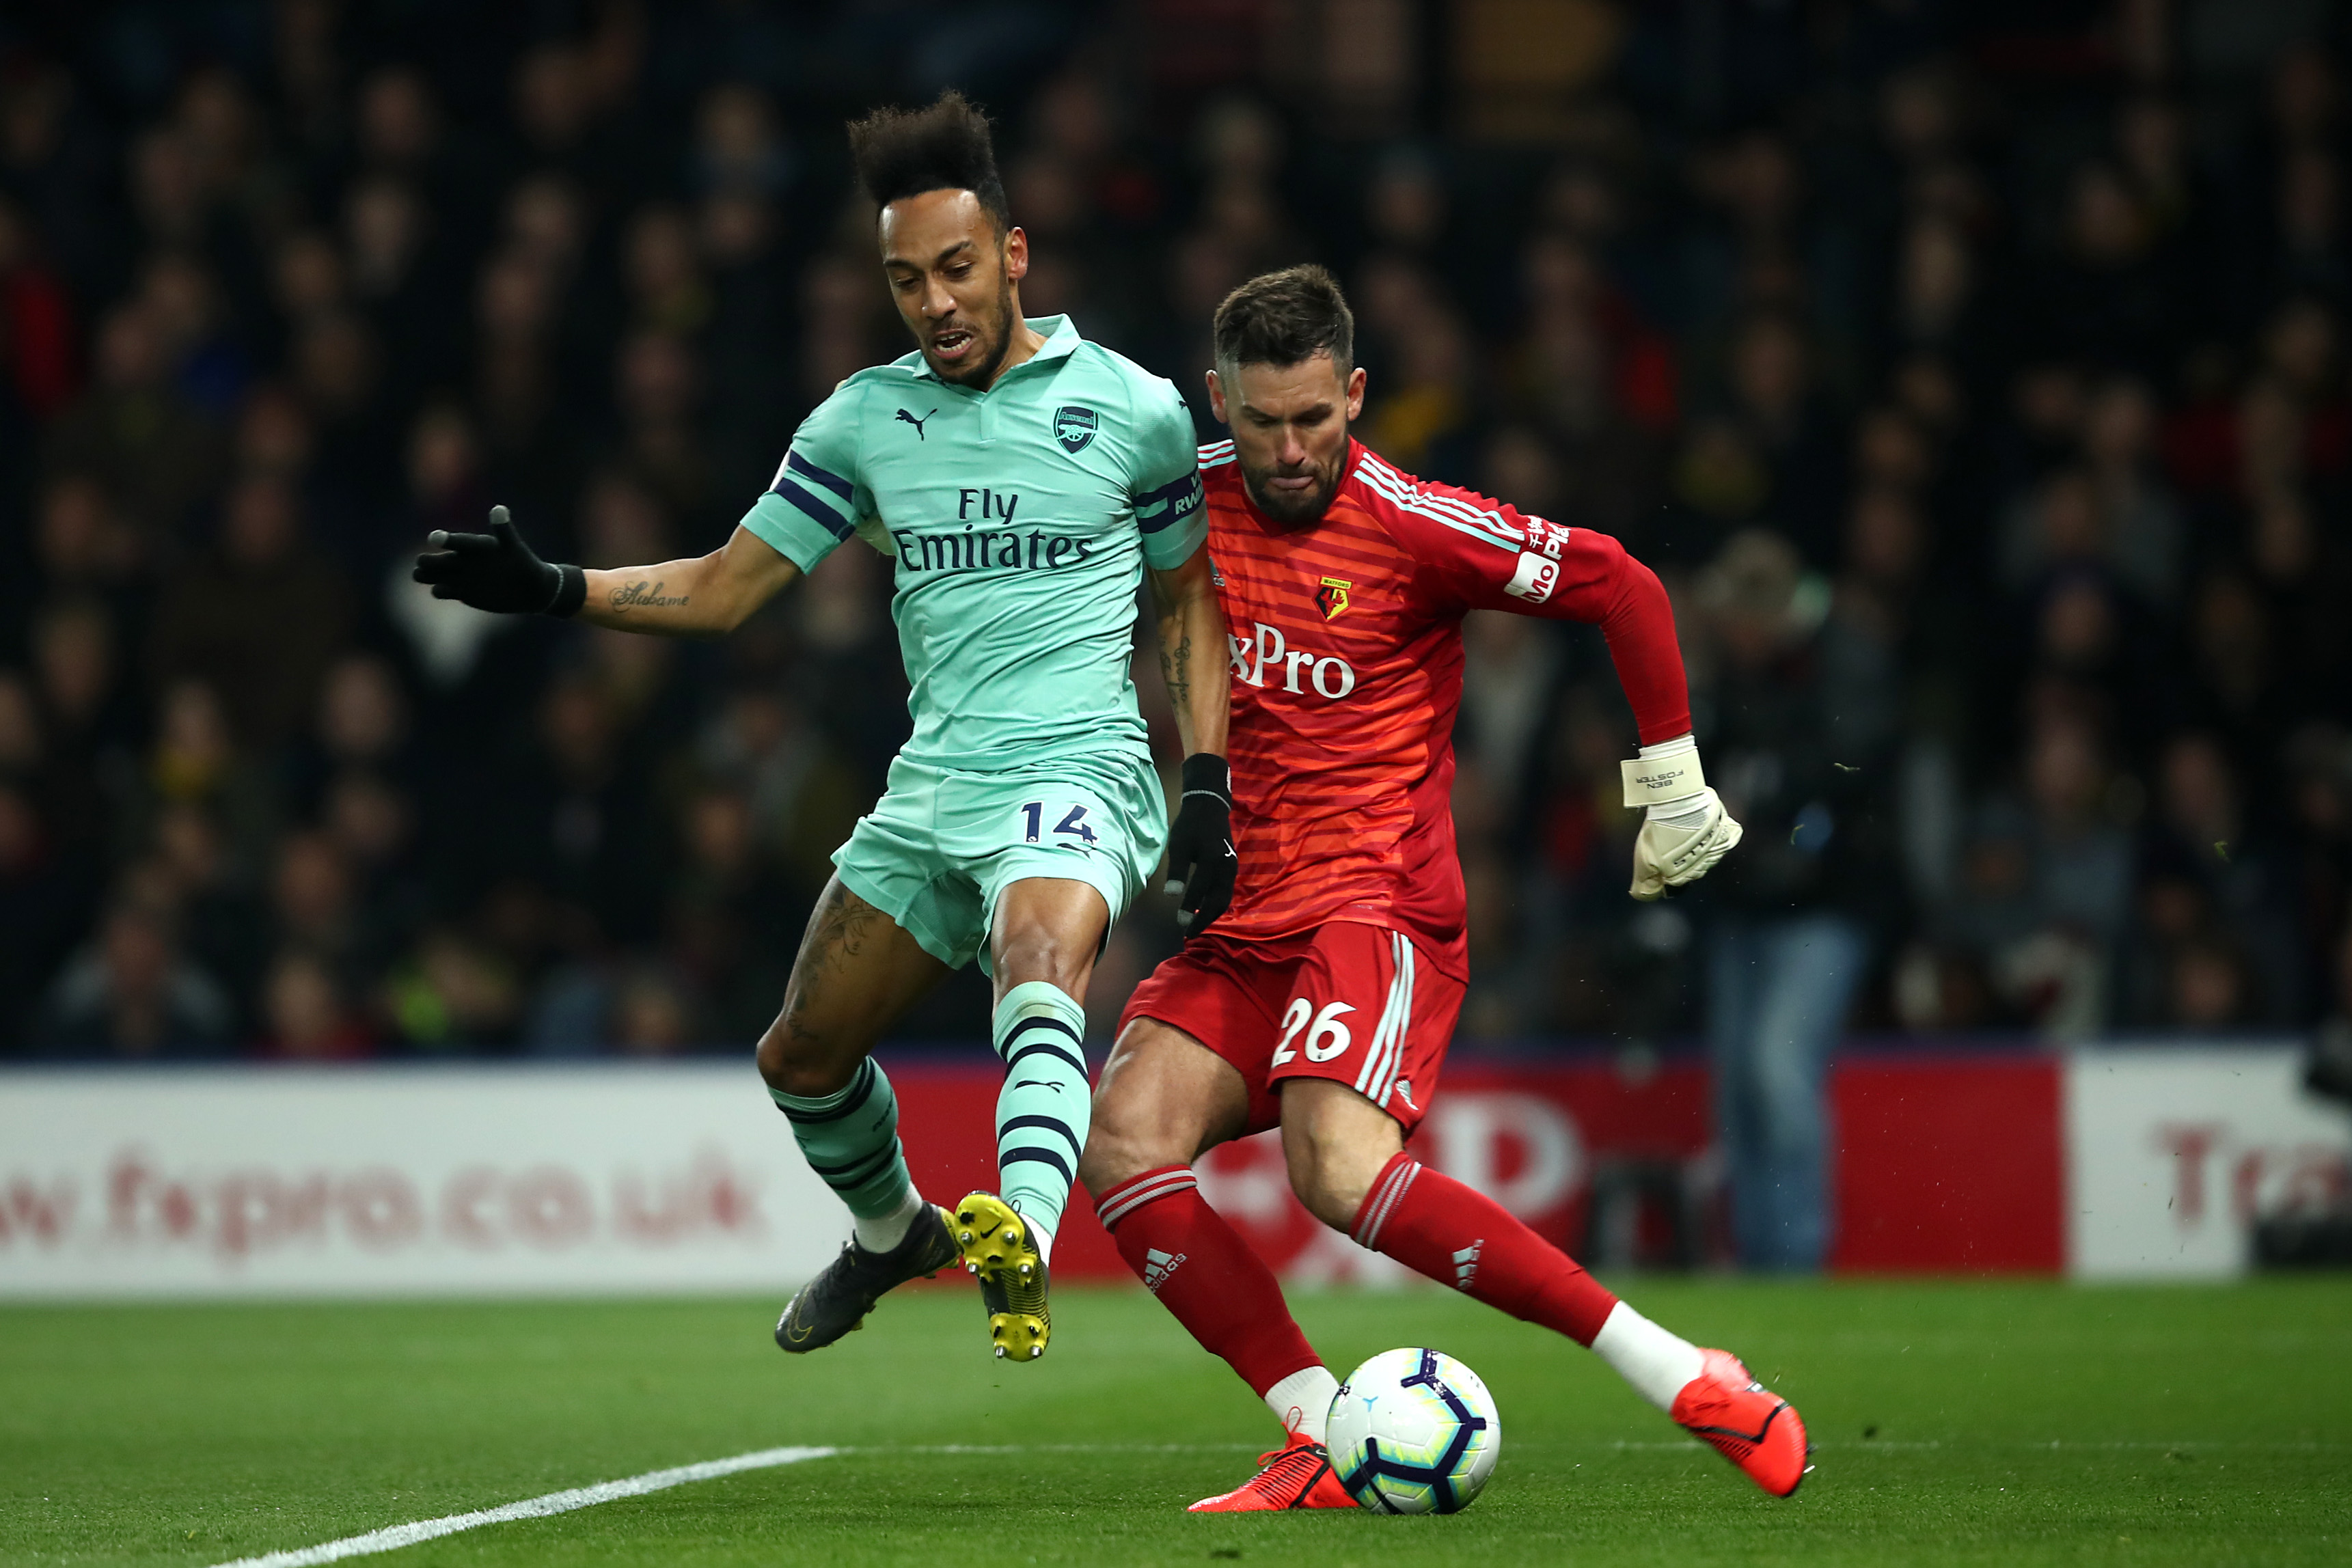 Pierre-Emerick Aubameyang challenges Ben Foster for the goal